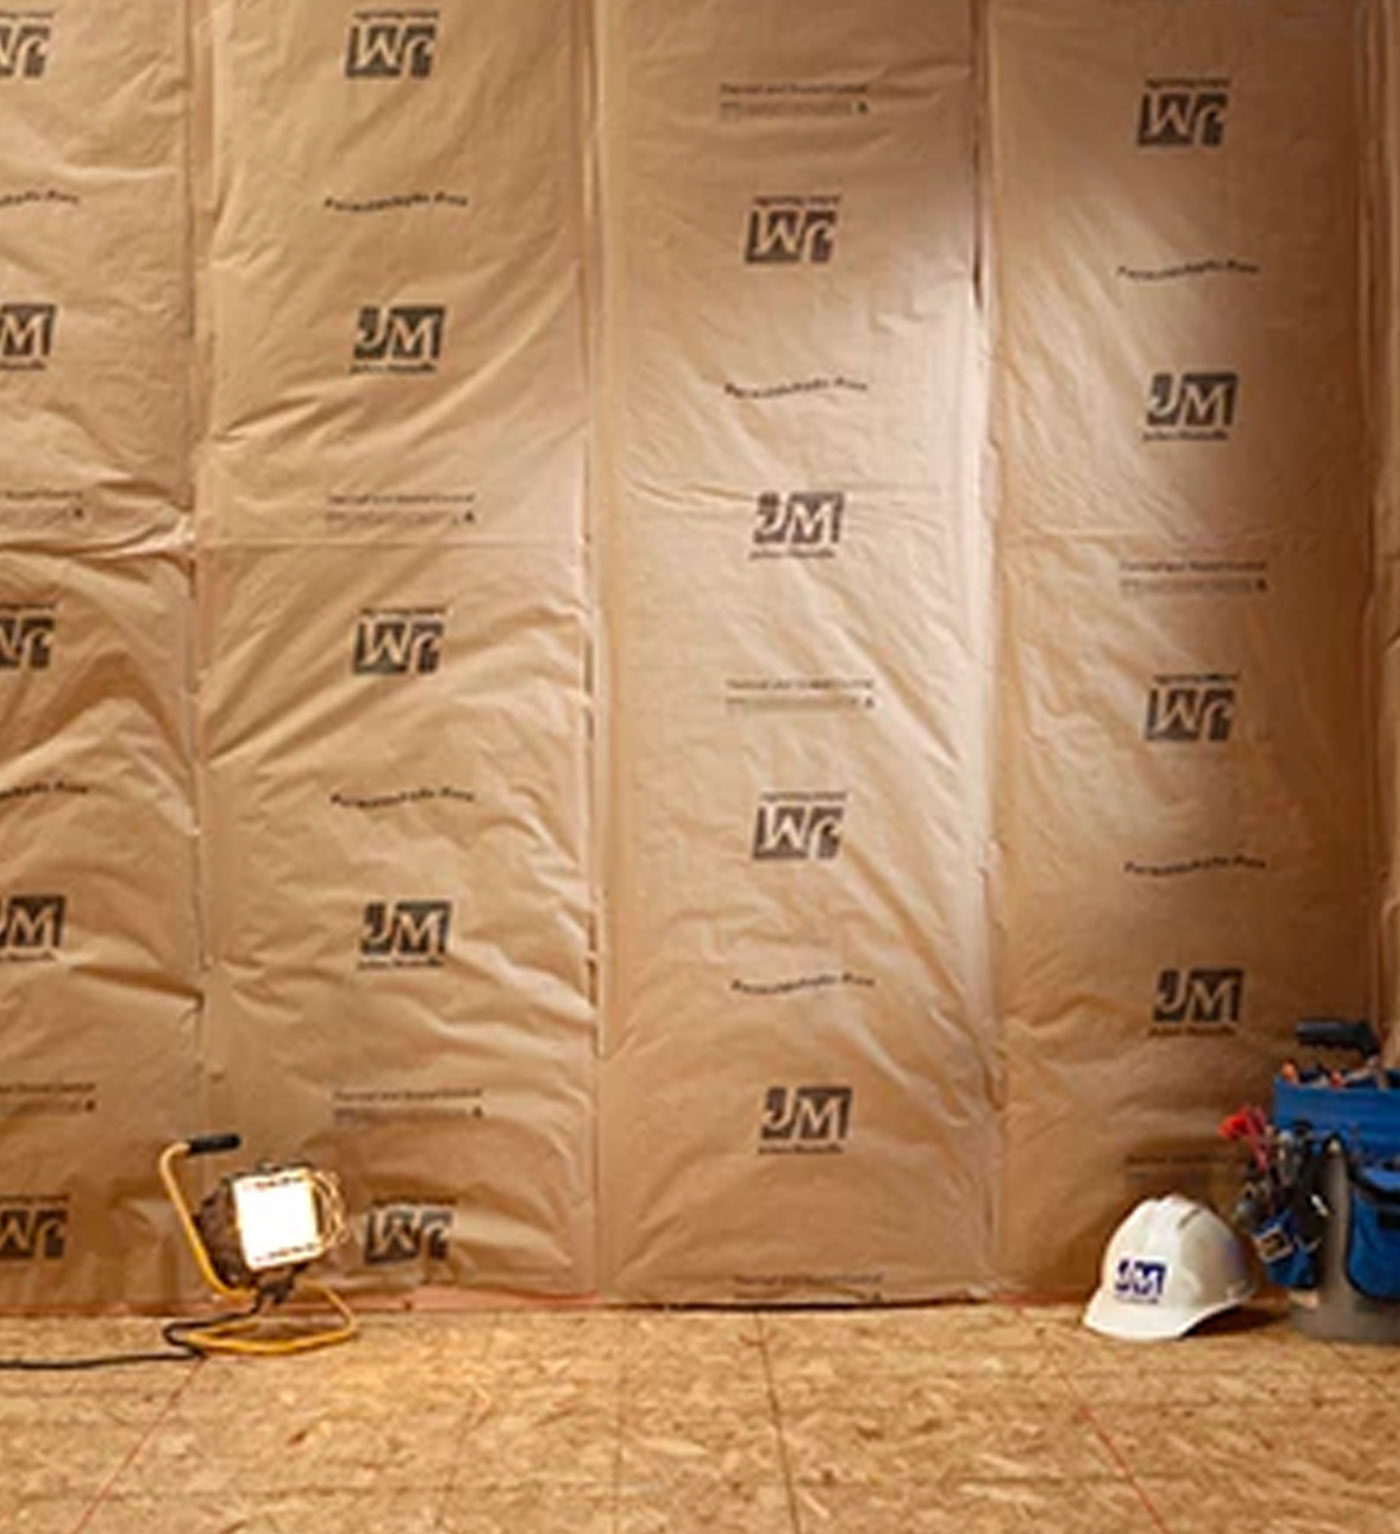 insulation-building-material-supply-store-eureka-ca-humboldt-county-california